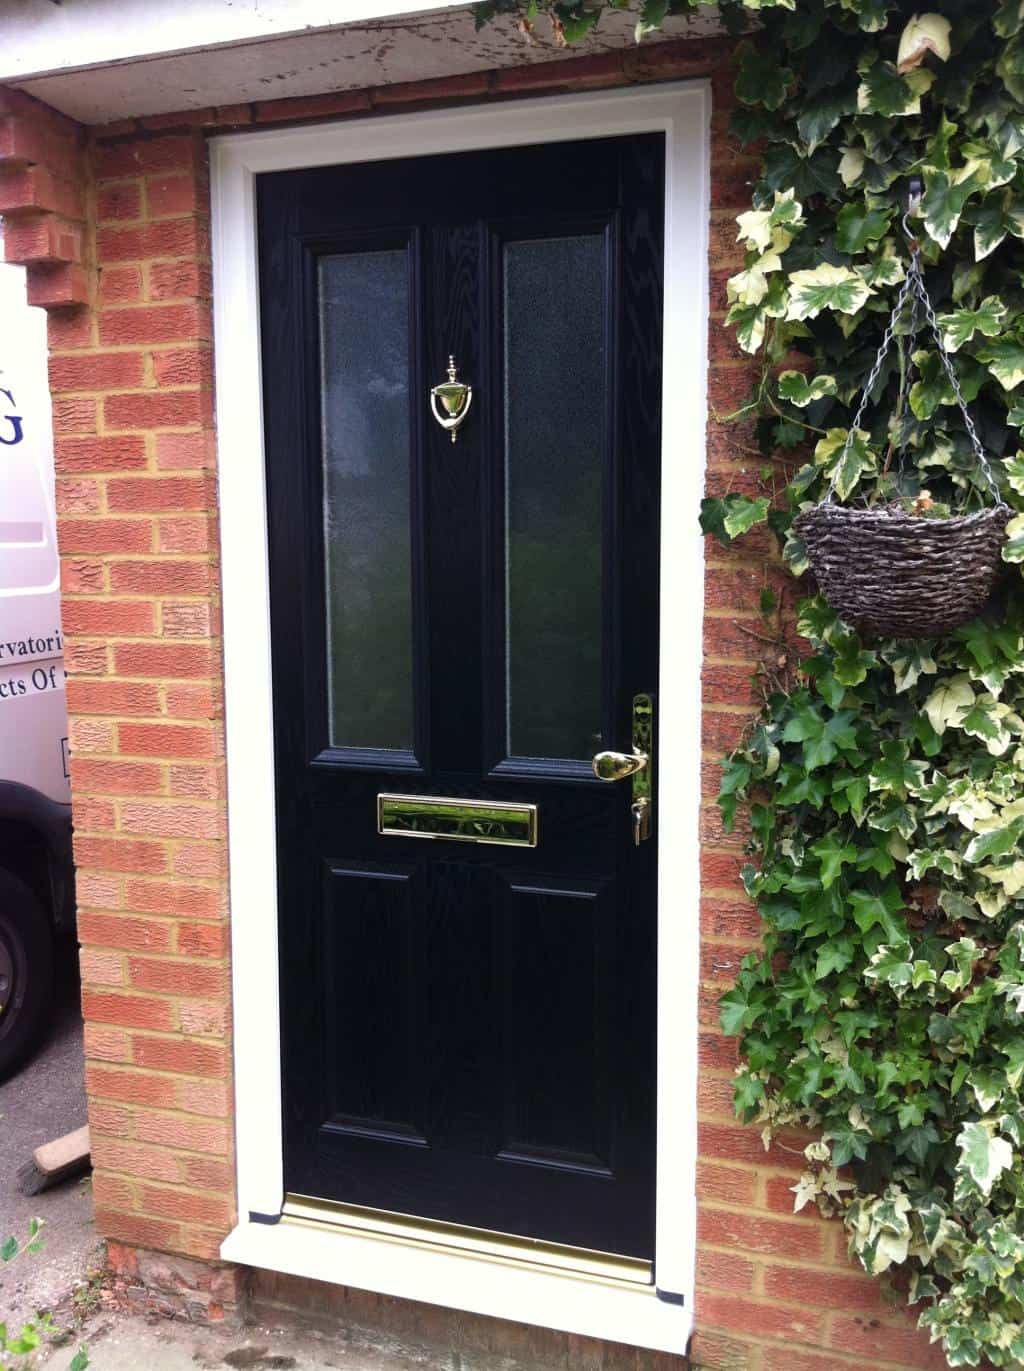 1371 #924E39 Black Front Door With Glass Quotes wallpaper Black Front Doors With Glass 43451024